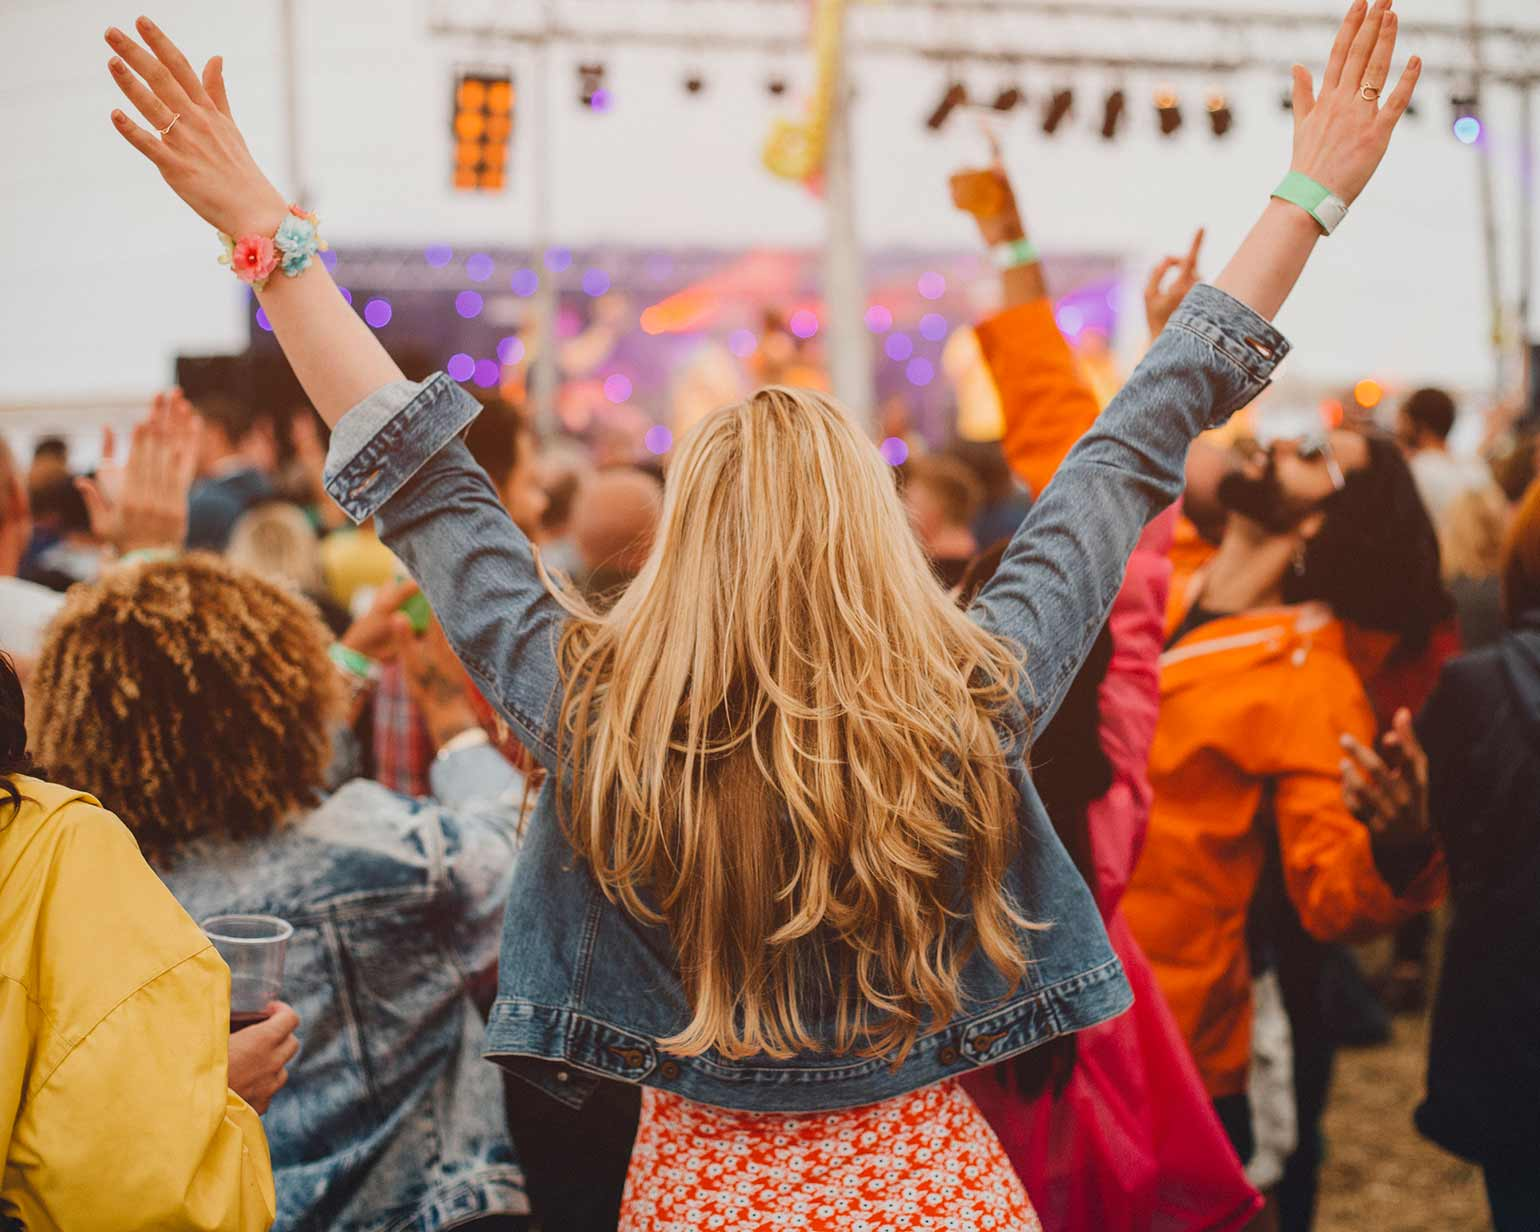 Young girl standing in a crowd at a music festival looking towards the stage.